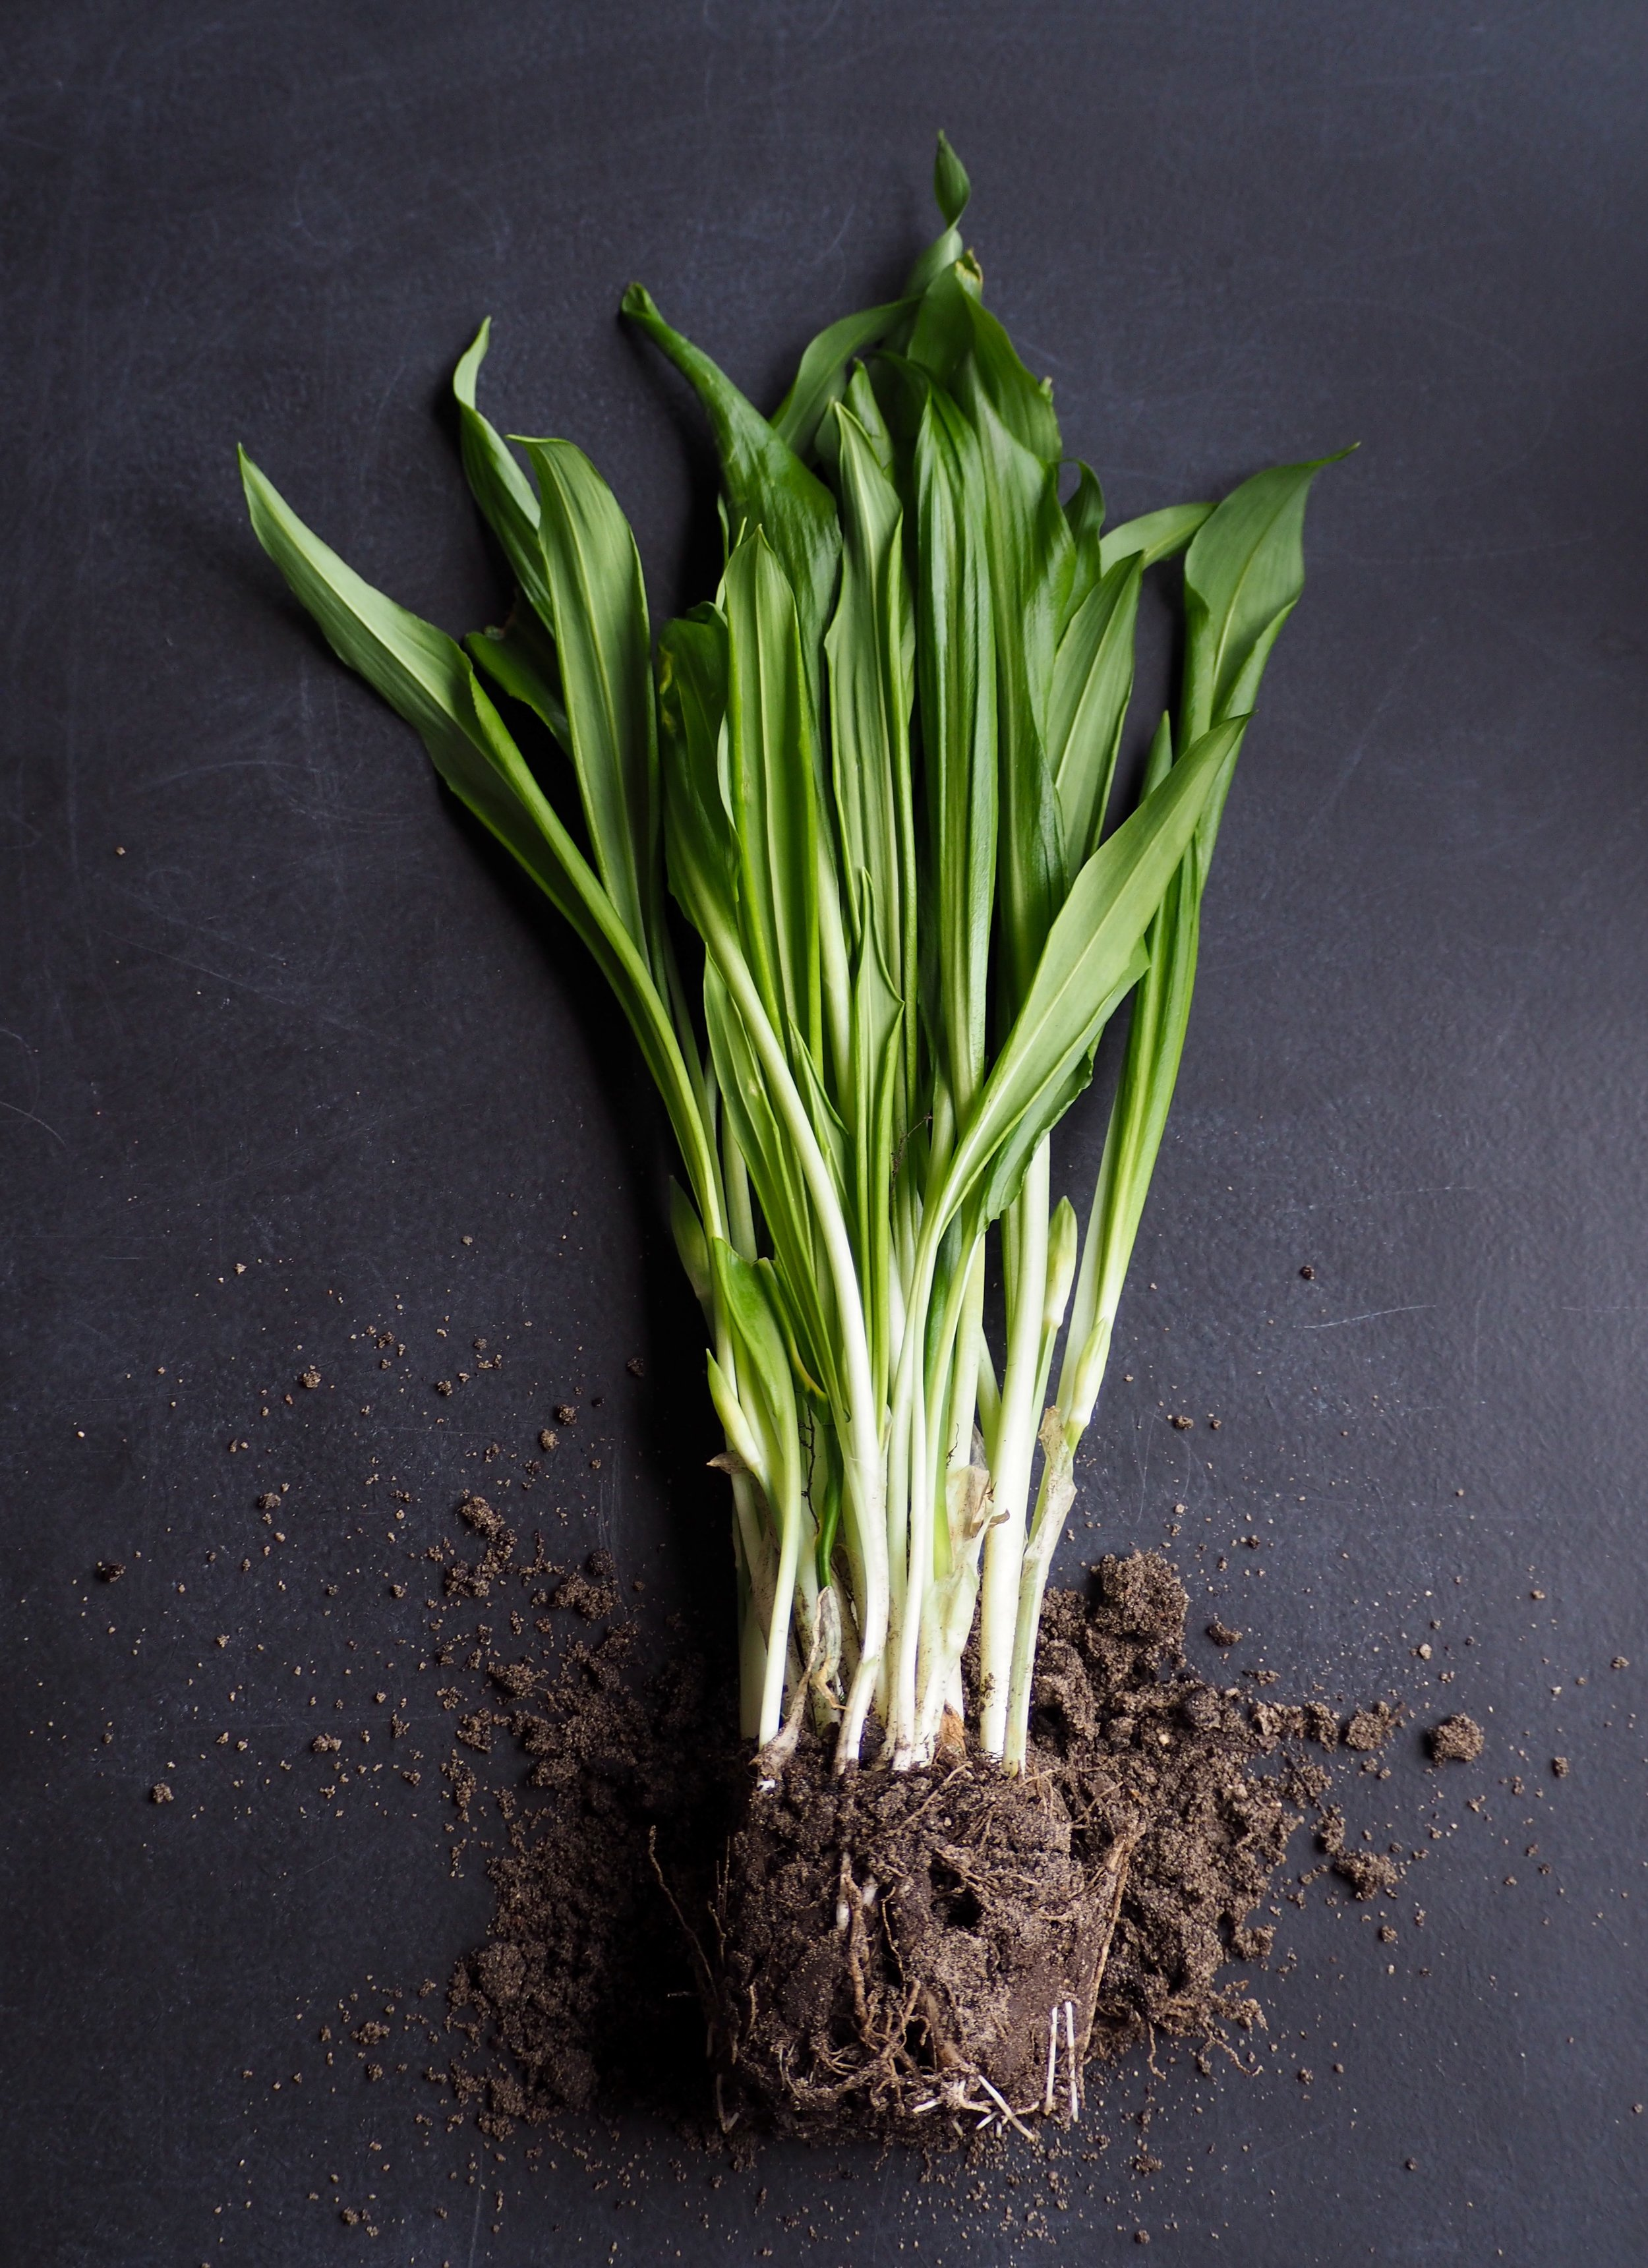 Ramps from the forest - Ramps grow in the first few weeks of spring before the canopy of the trees above shades the forest floor and limits the reach of the sun. You can find them at most farmers markets in early May.